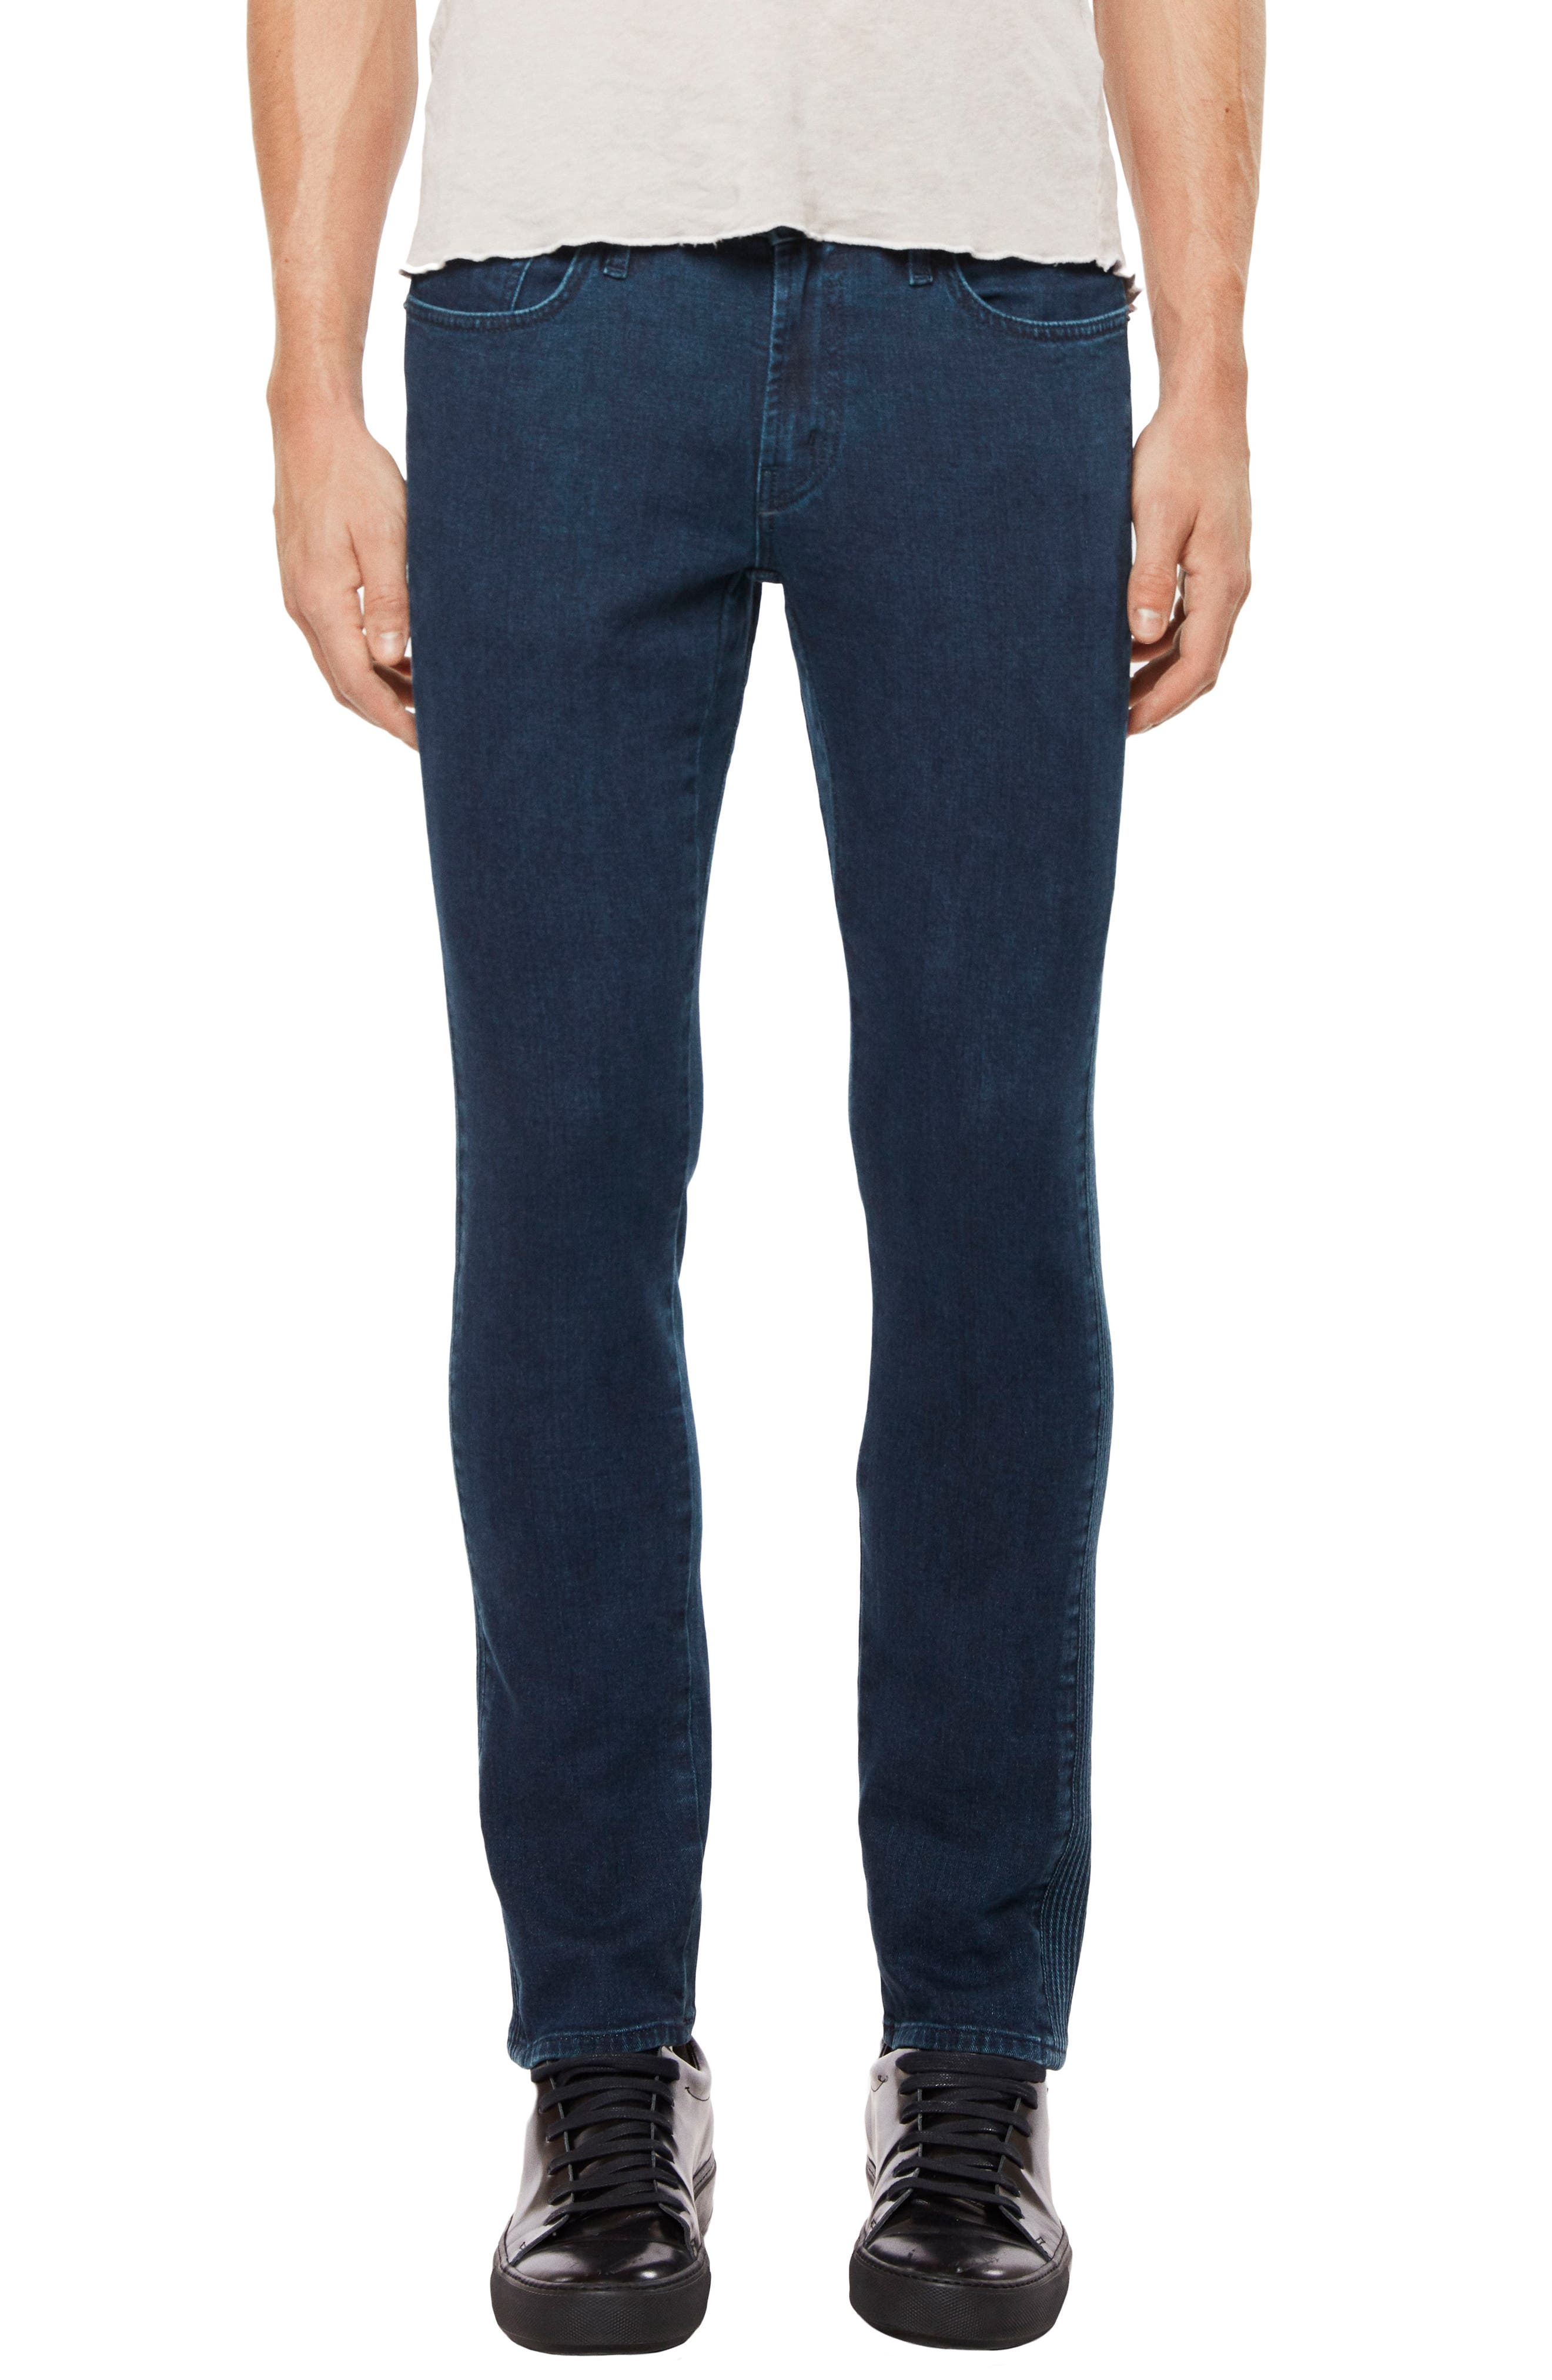 Moto Skinny Fit Jeans,                             Main thumbnail 1, color,                             Afantic